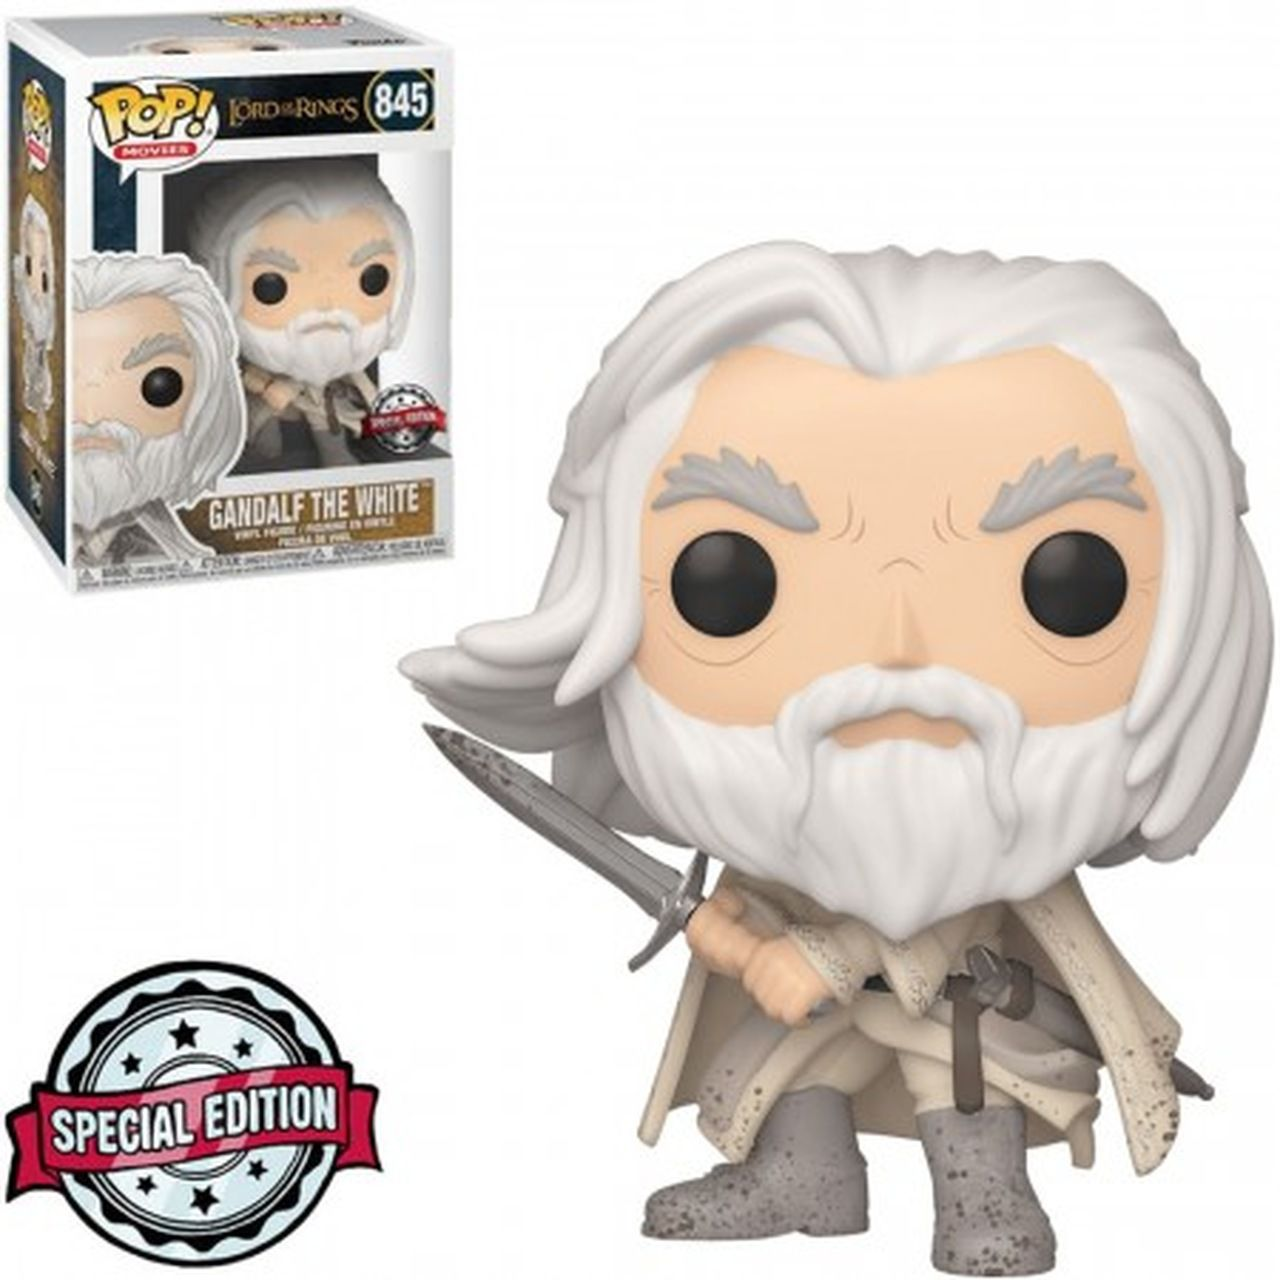 Pop! Gandalf (the White): O Senhor dos Anéis (The Lord of the Rings) Exclusivo #845- Funko